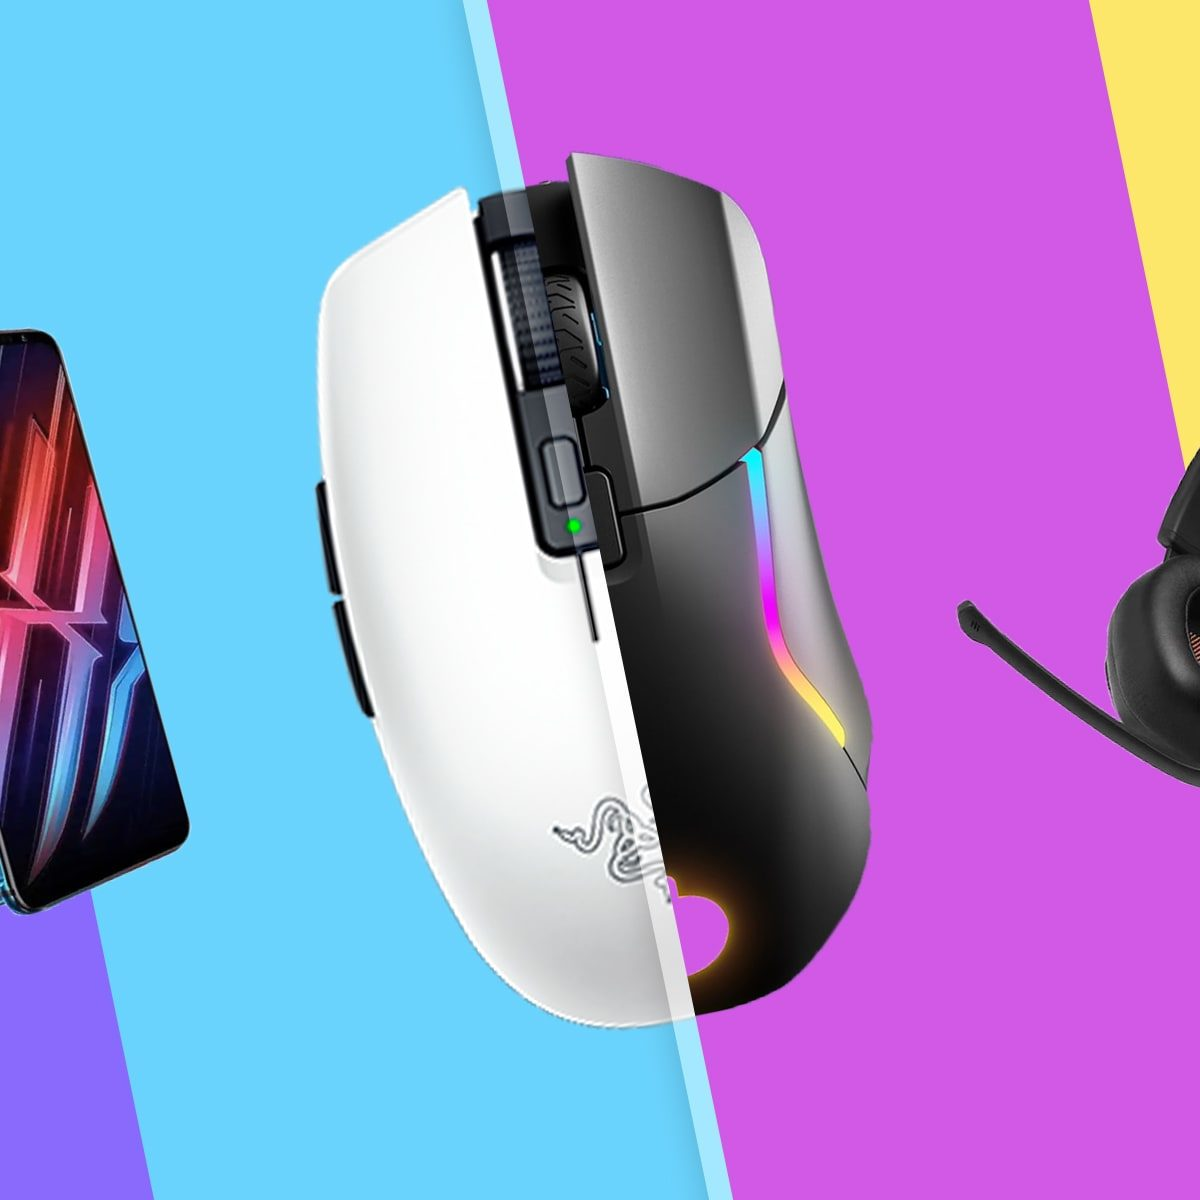 Which gaming gadget should you buy in 2021? Read our gaming guide to find the best options thumbnail